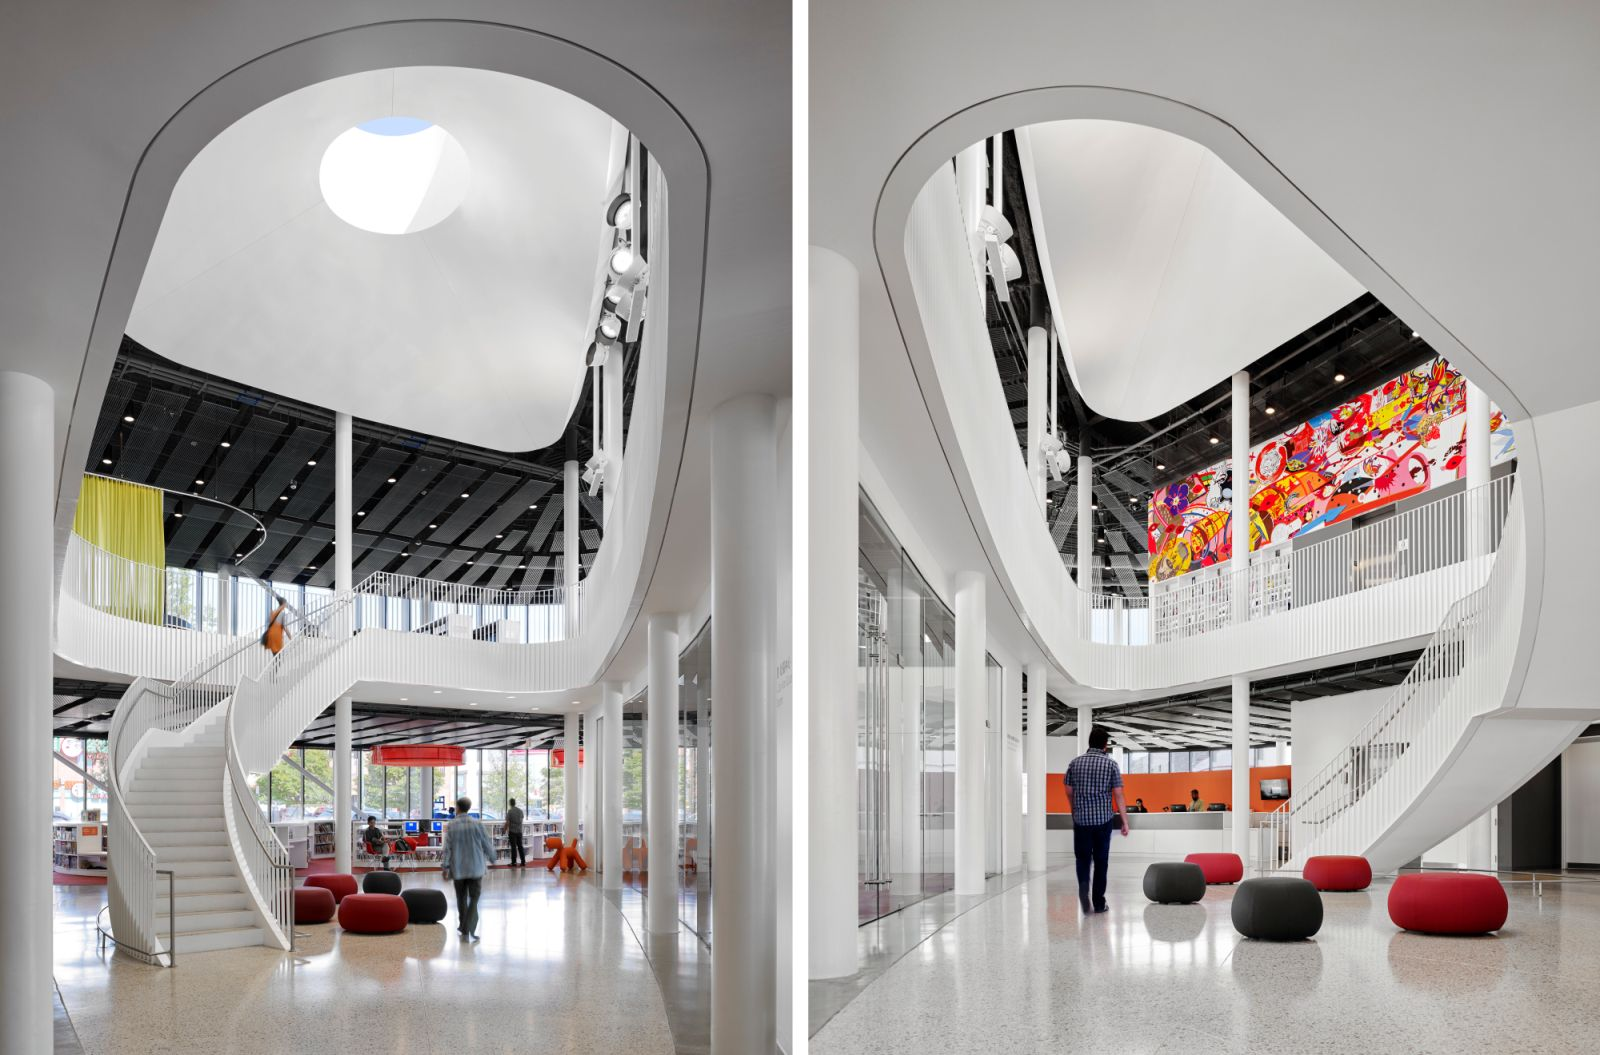 Chicago Public Library Chinatown Branch By Som 04 Aasarchitecture